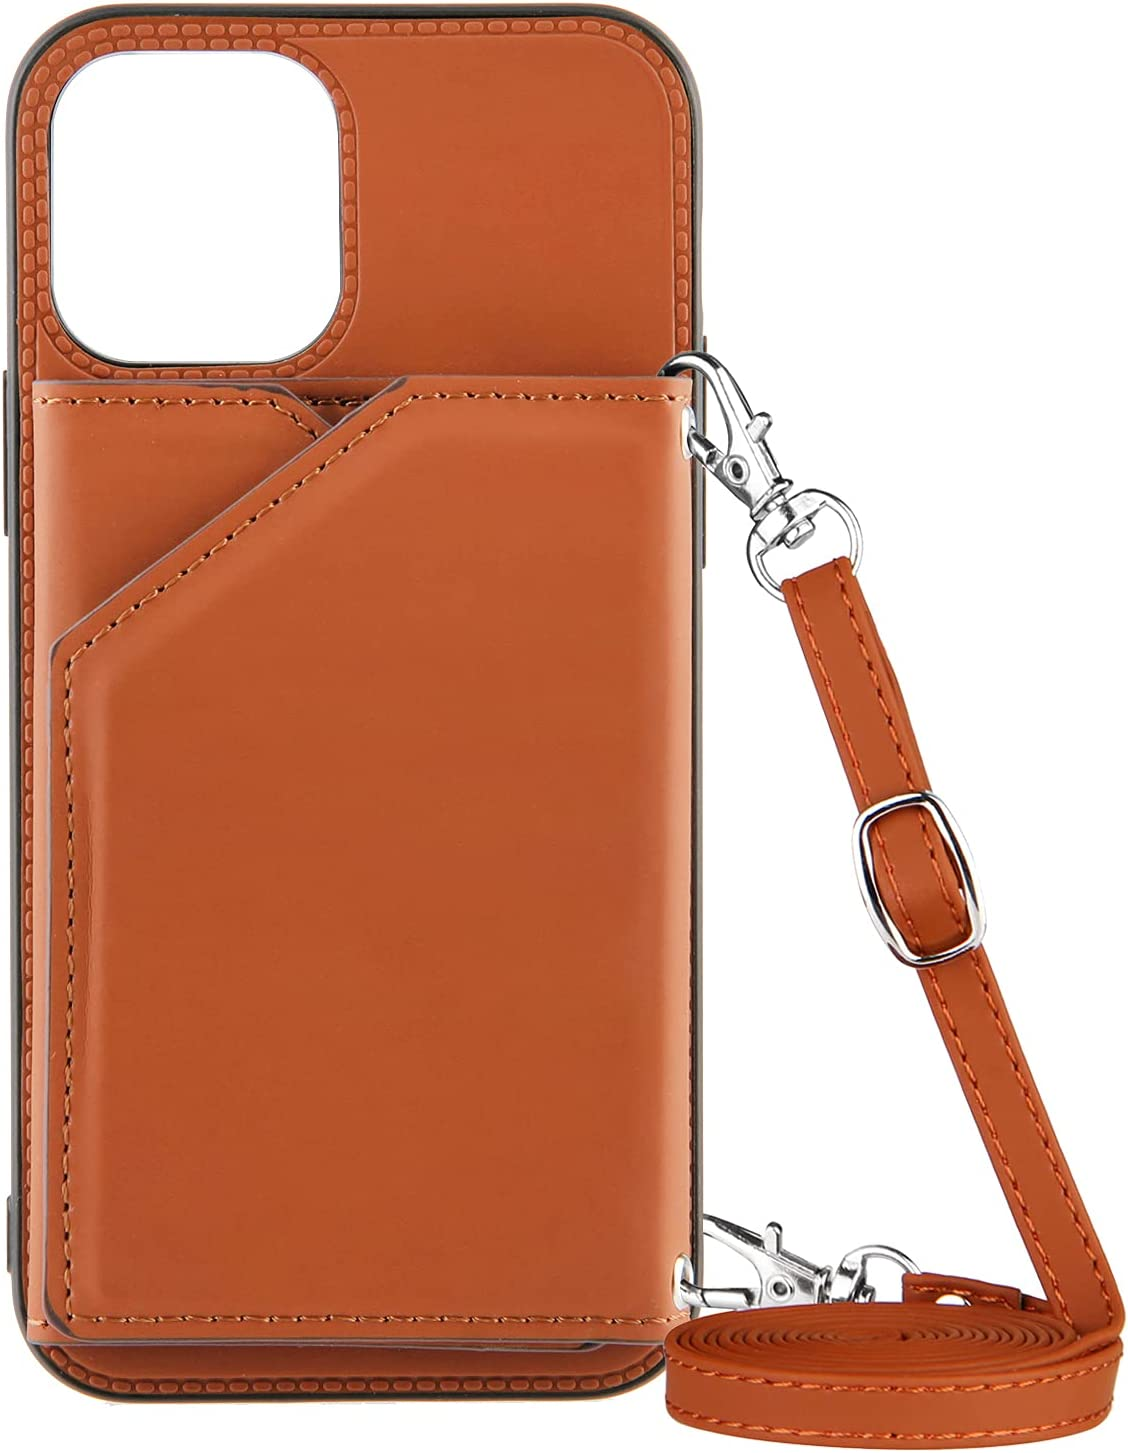 Case for iPhone 13 Pro 6.1